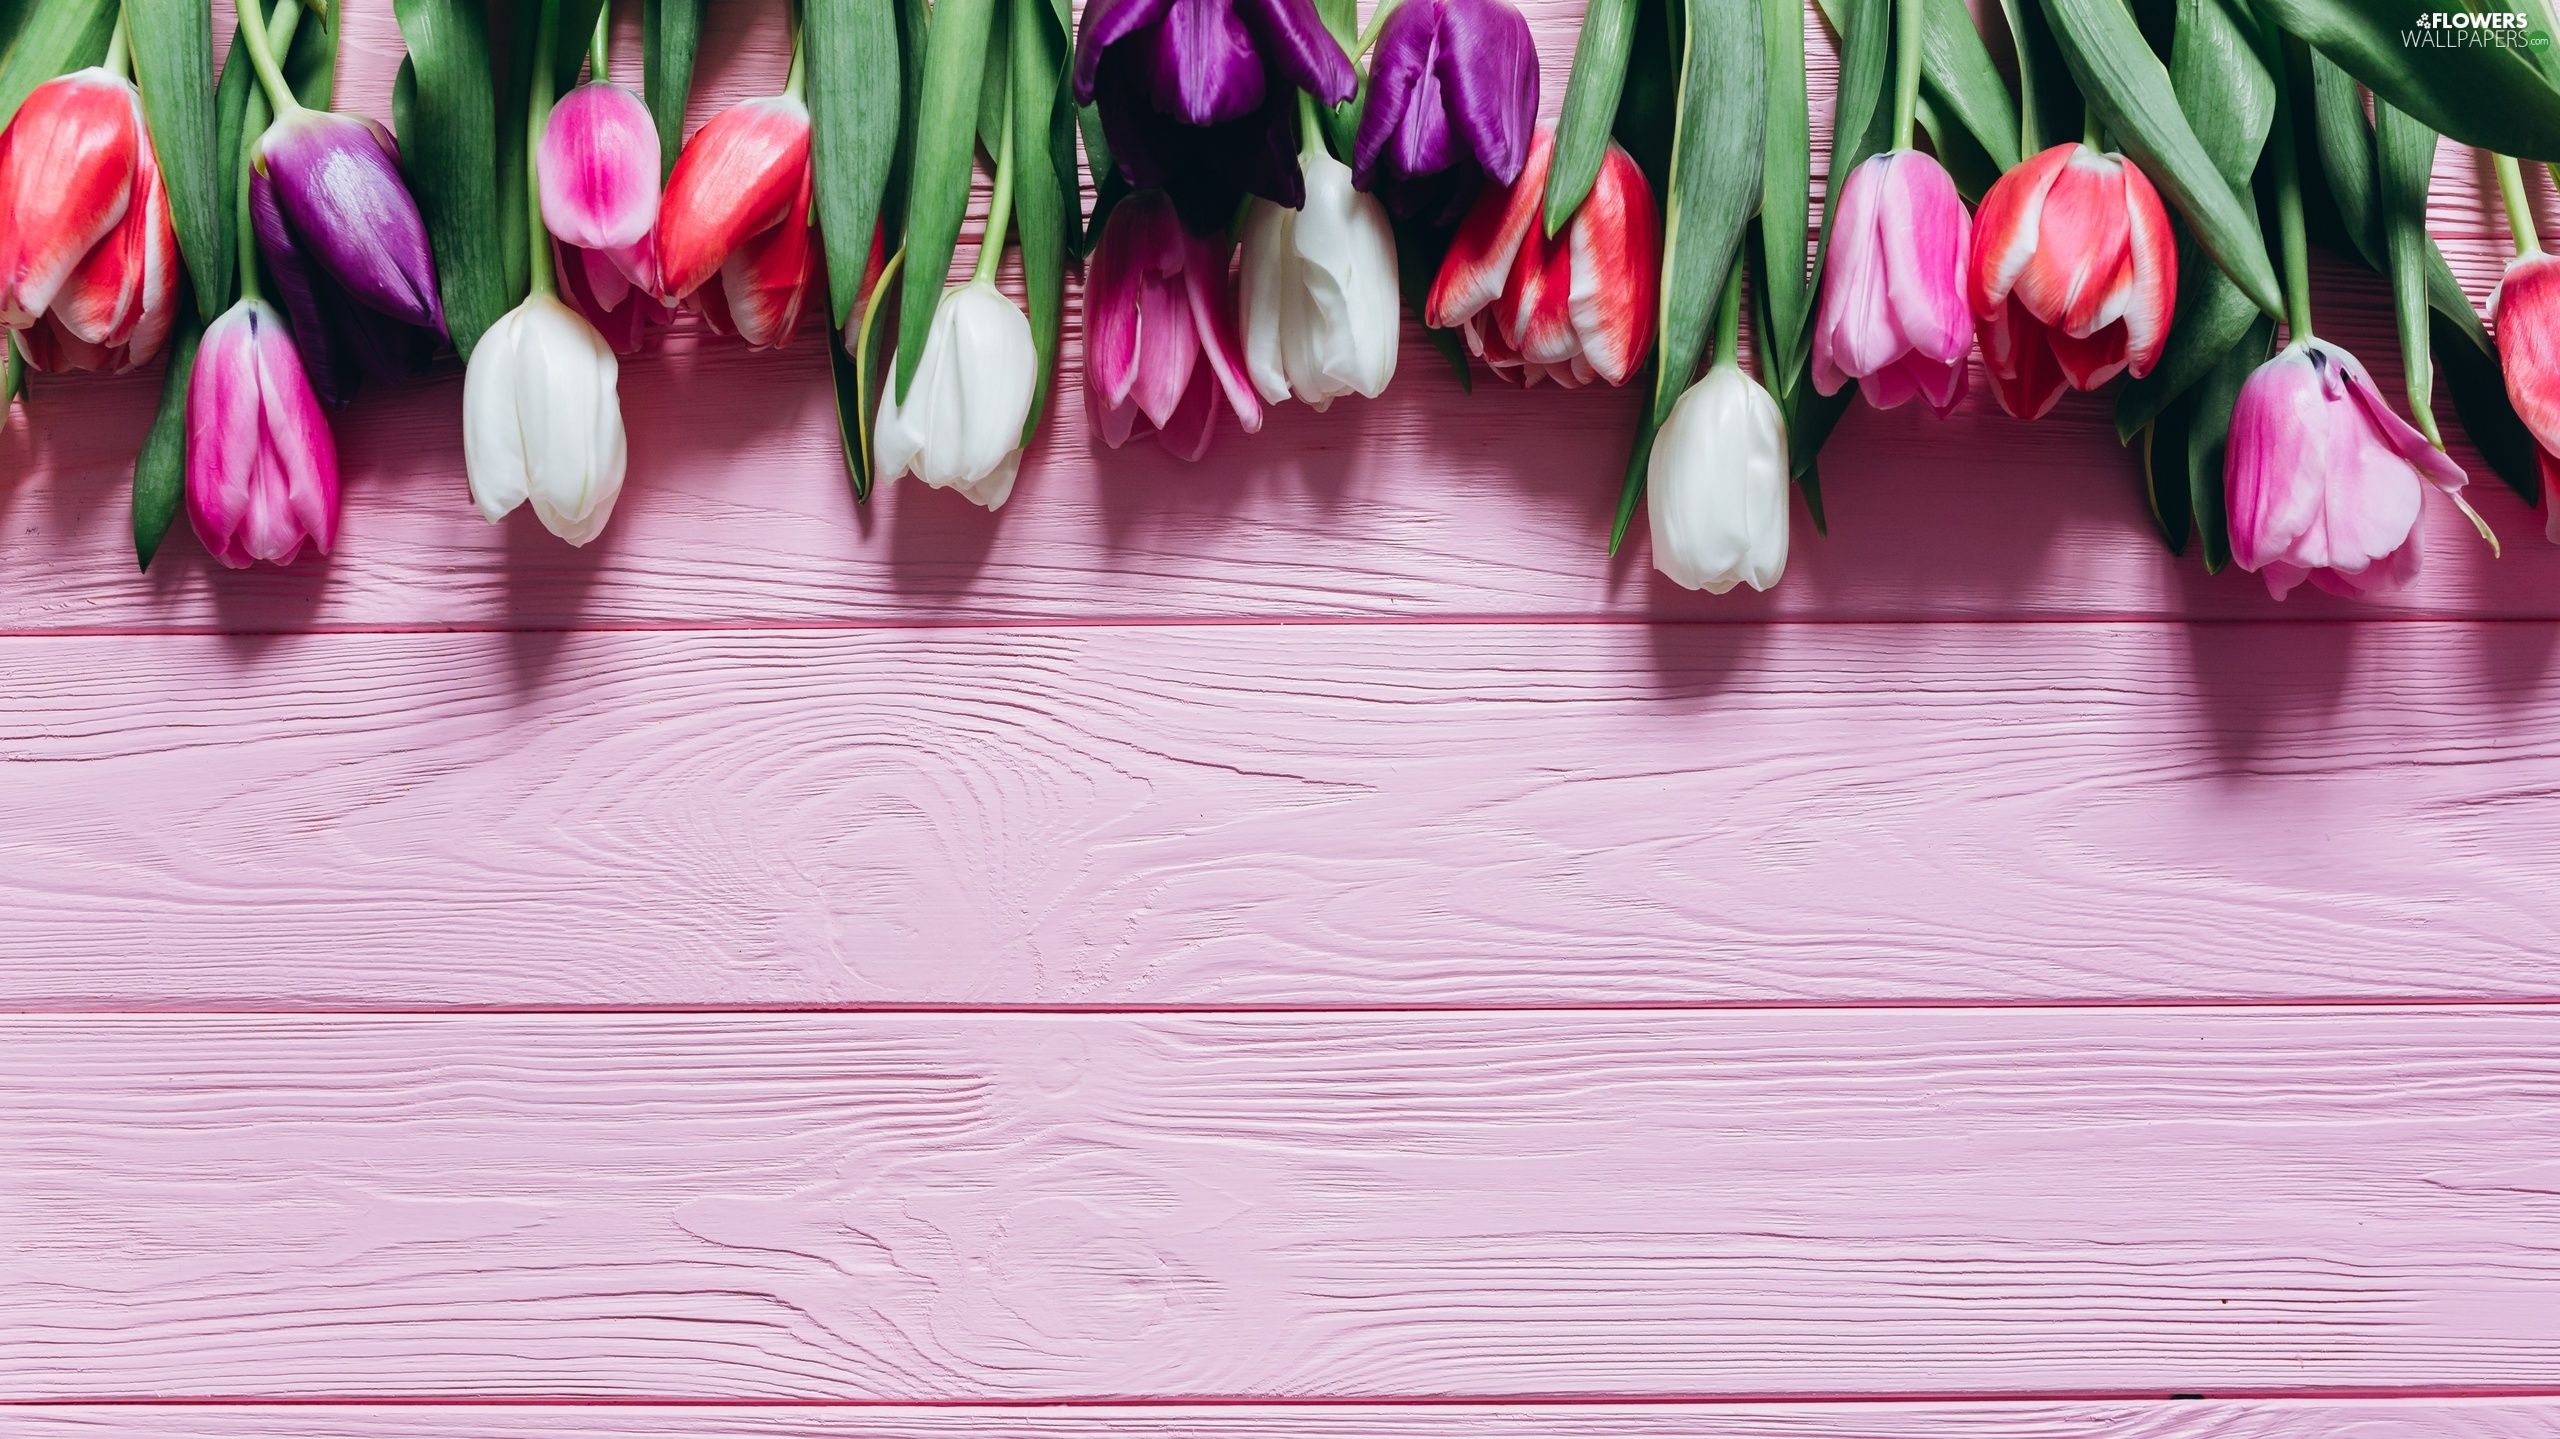 Pink, Boarding, Color, Tulips, Flowers - Kwiaty Tapeta Na Pulpit , HD Wallpaper & Backgrounds